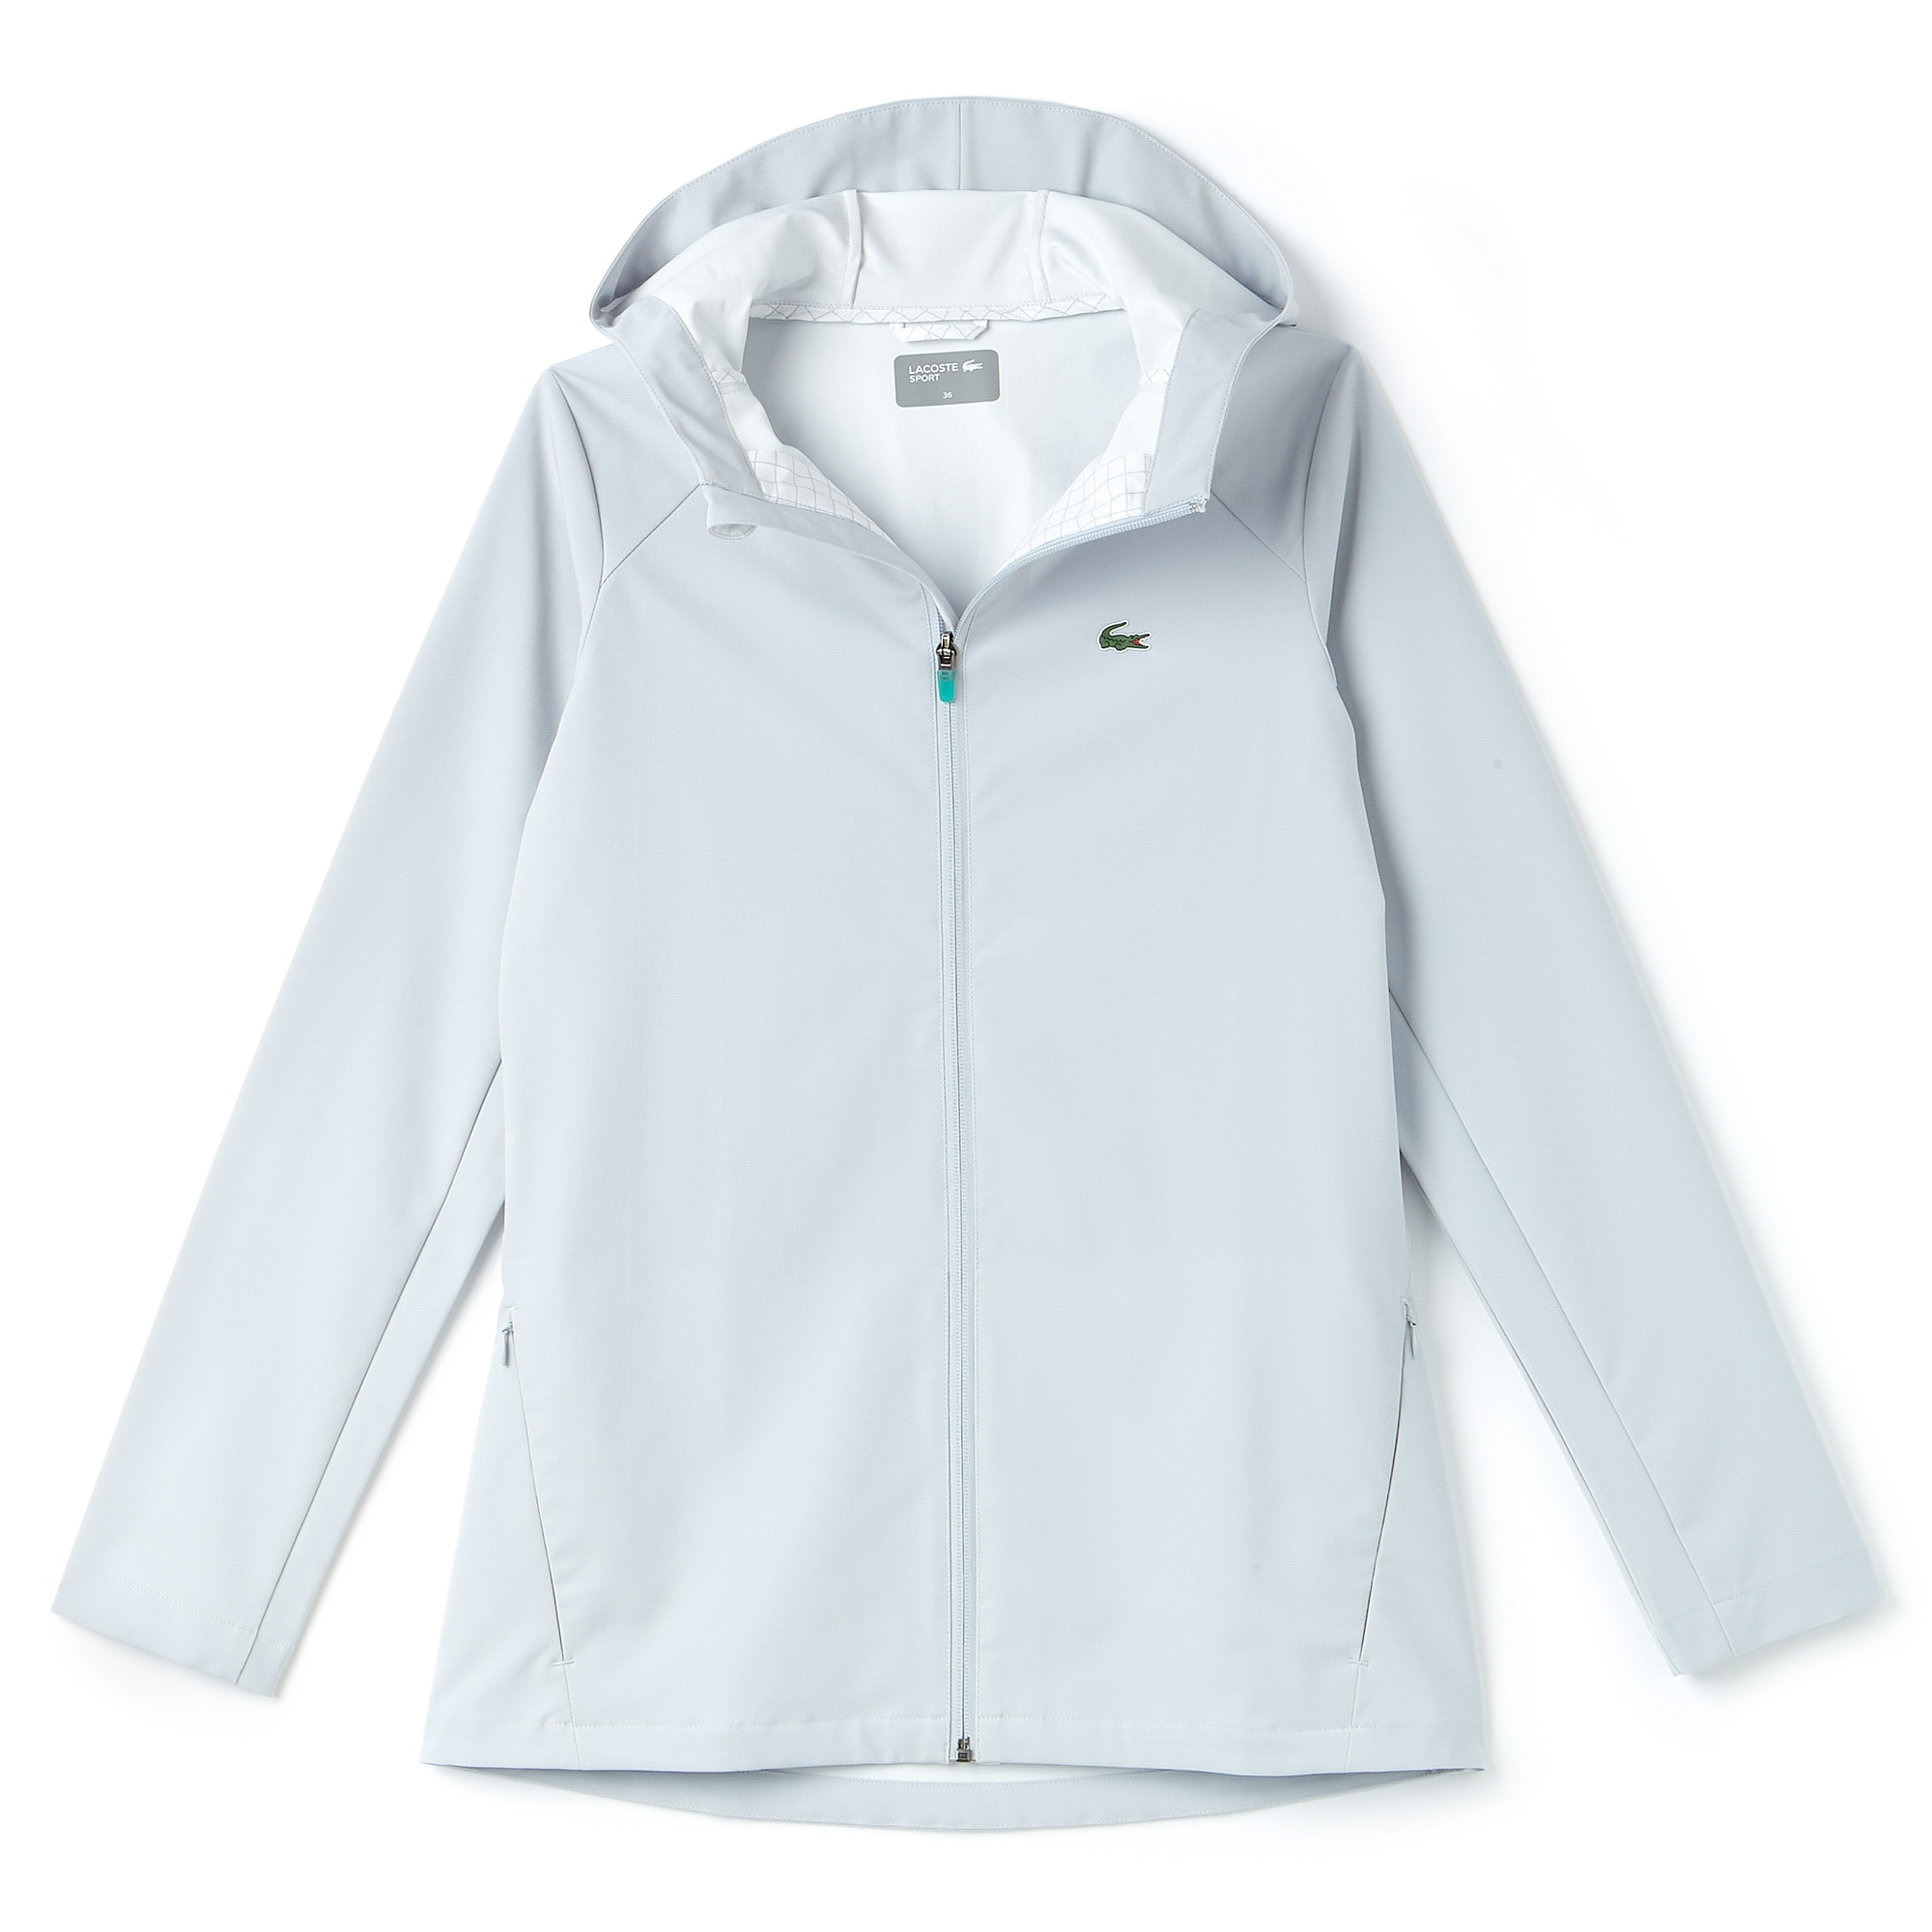 Women's SPORT Hooded Water-Resistant Tennis Windbreaker